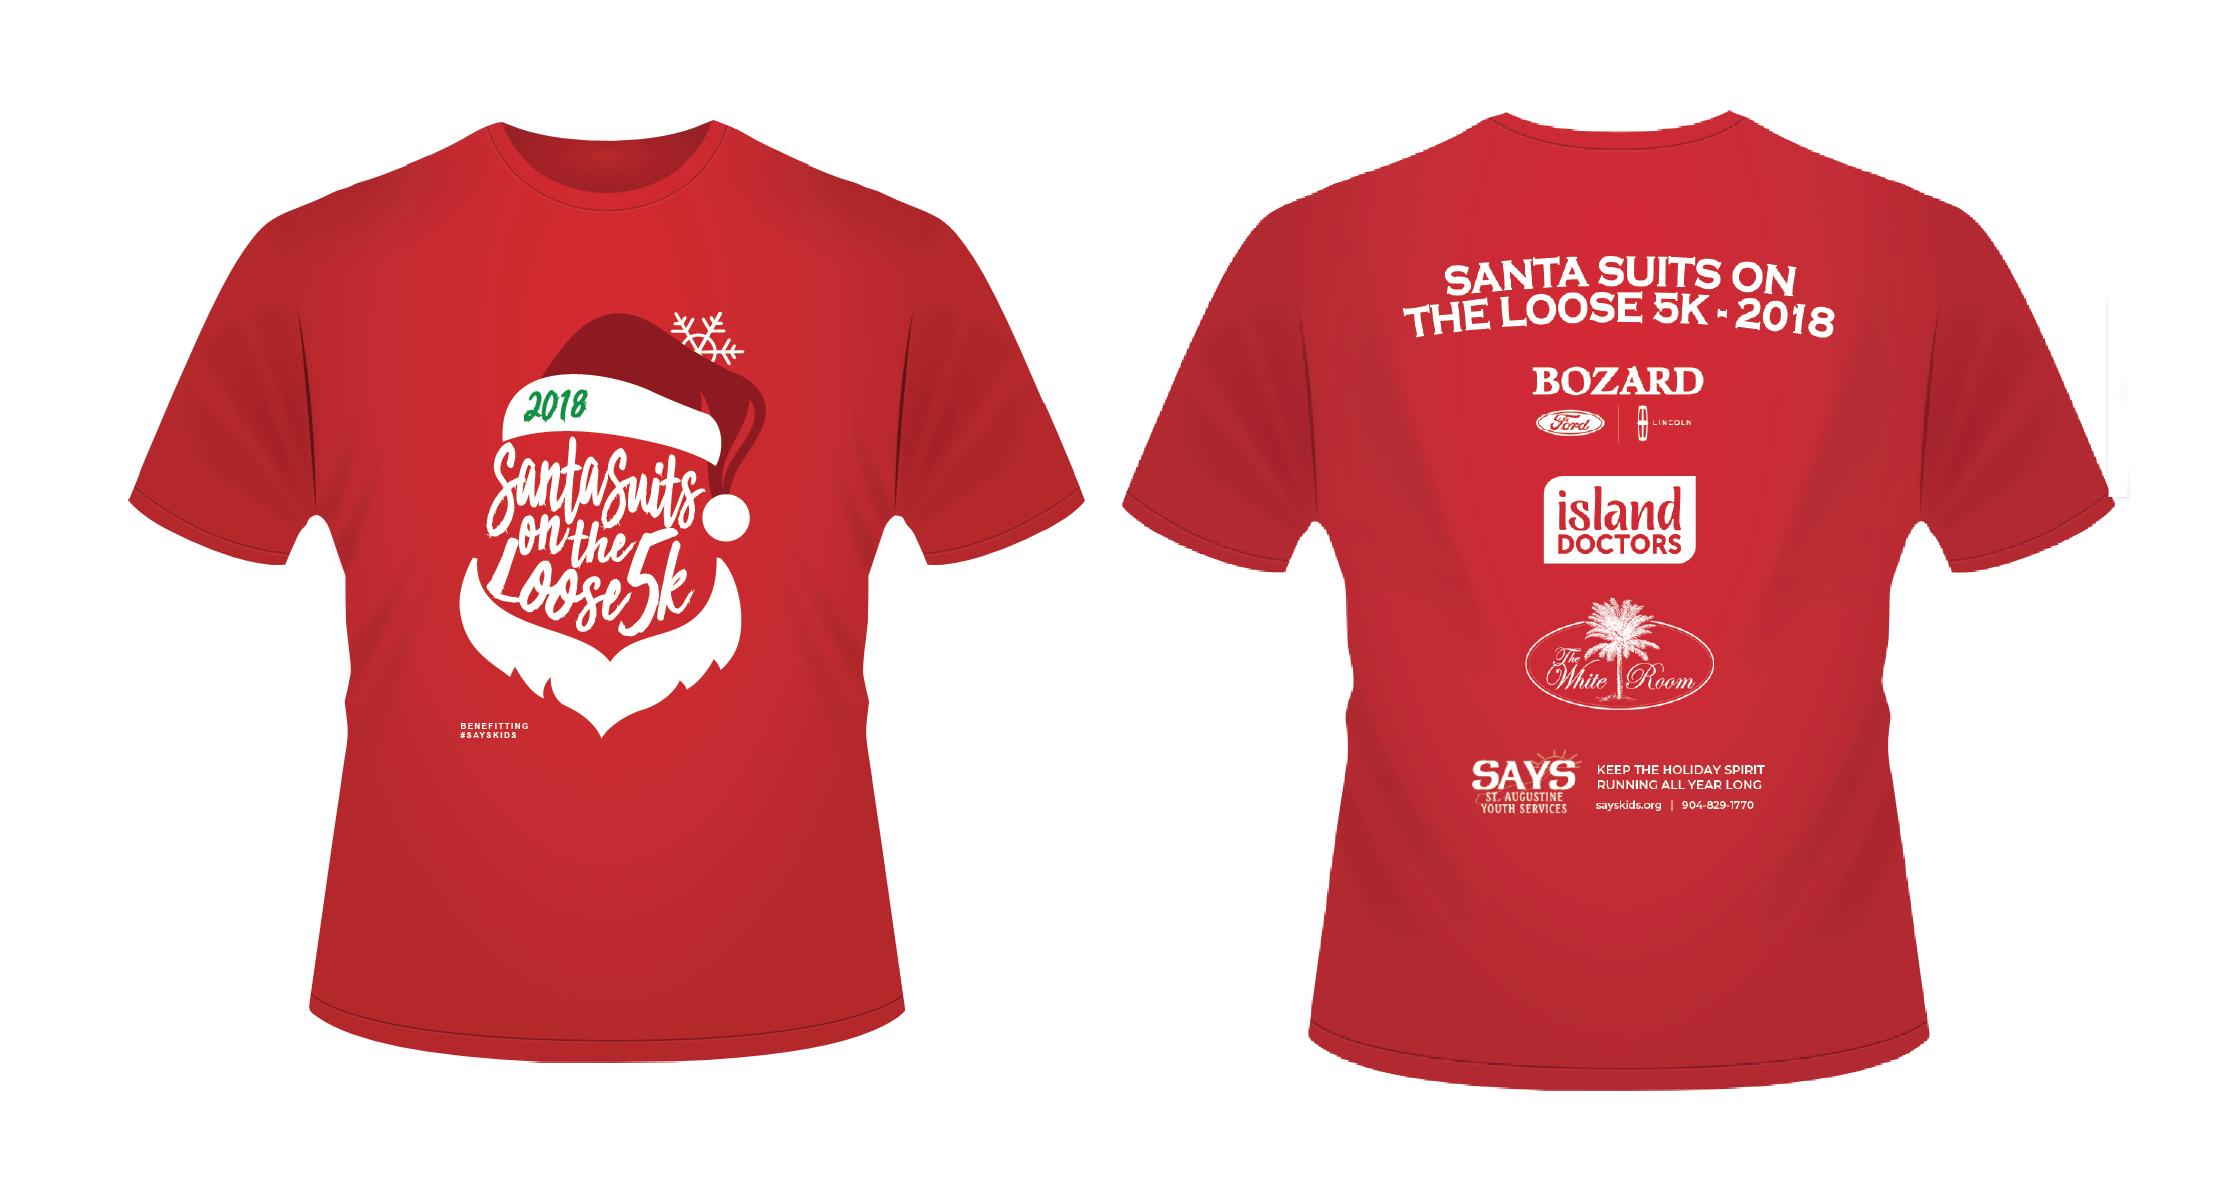 RACE SWAG: All registrants will receive a Santa themed race t-shirt (or Santa Suit). Finishers receive finisher's medals, and the top 3 finishers in each age group receive a customized holiday ornament 'trophy'.